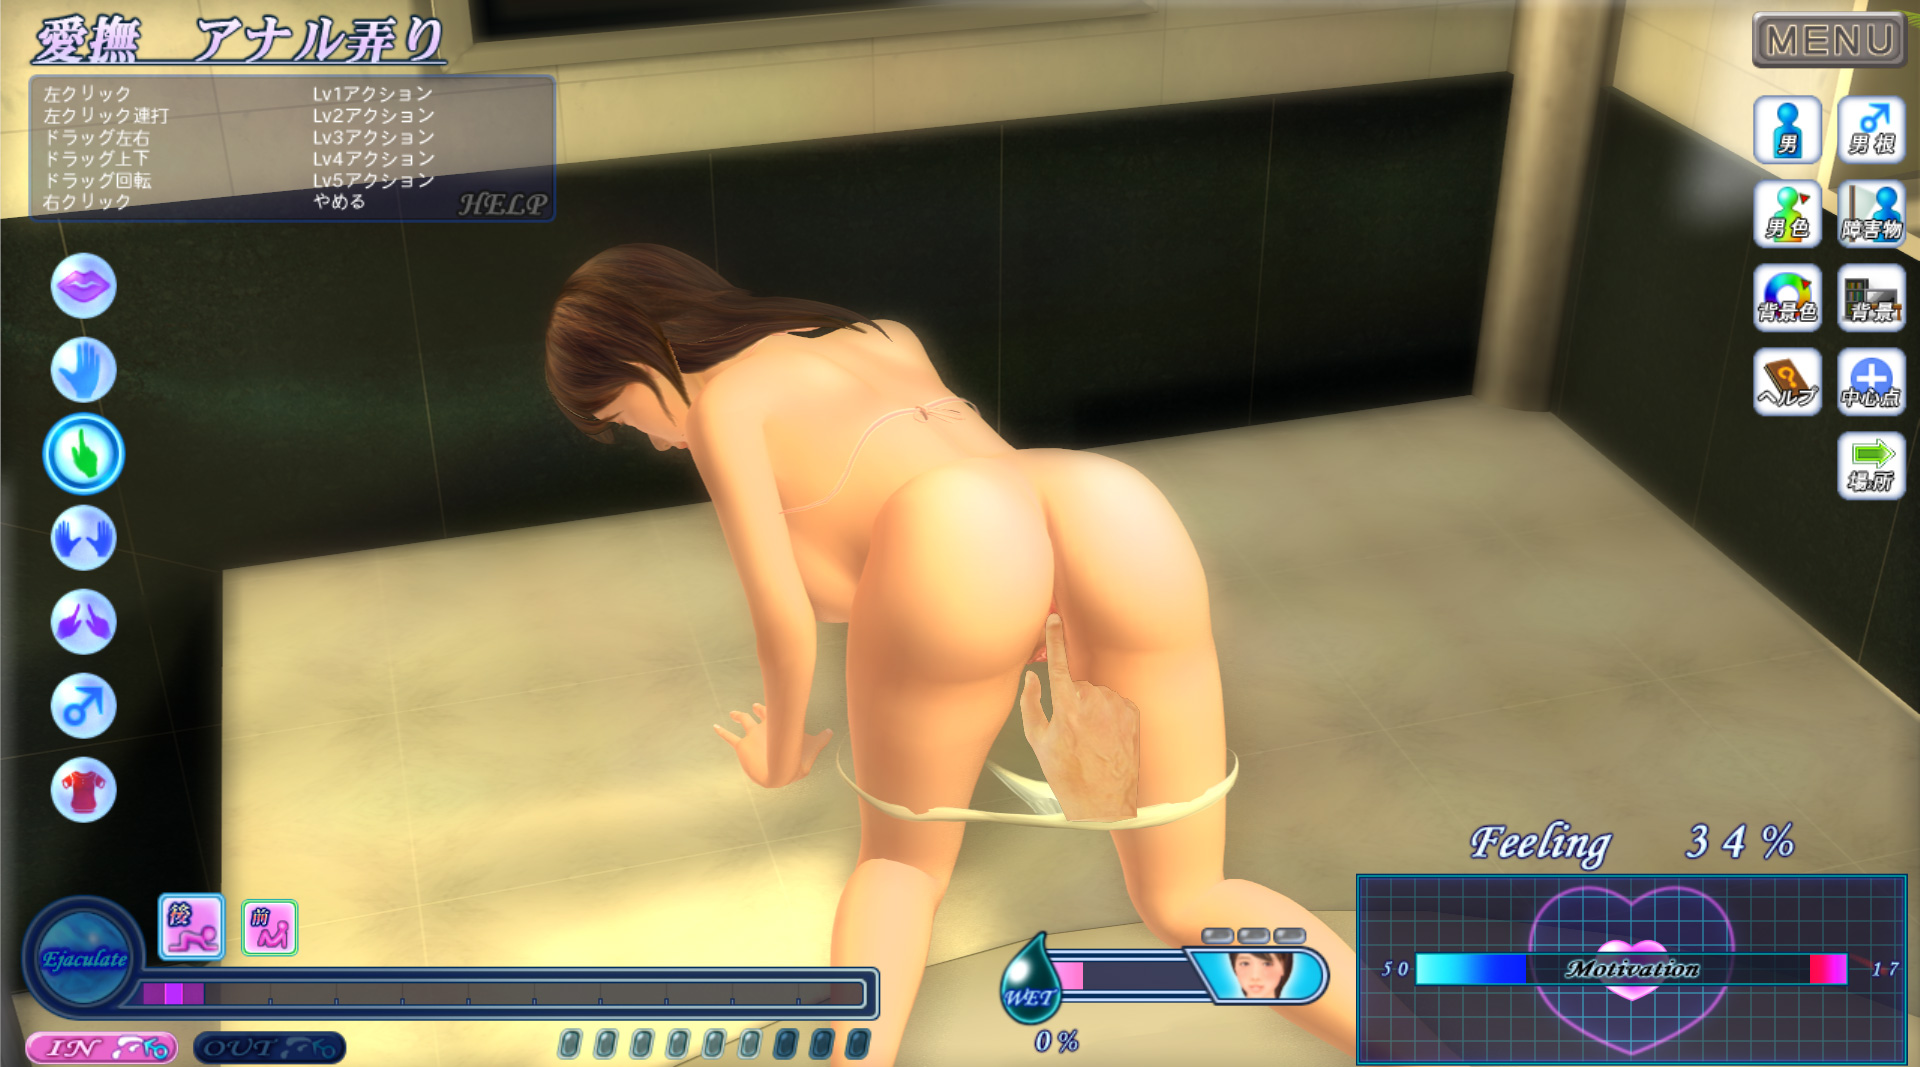 Sex toy for sims hentai scene